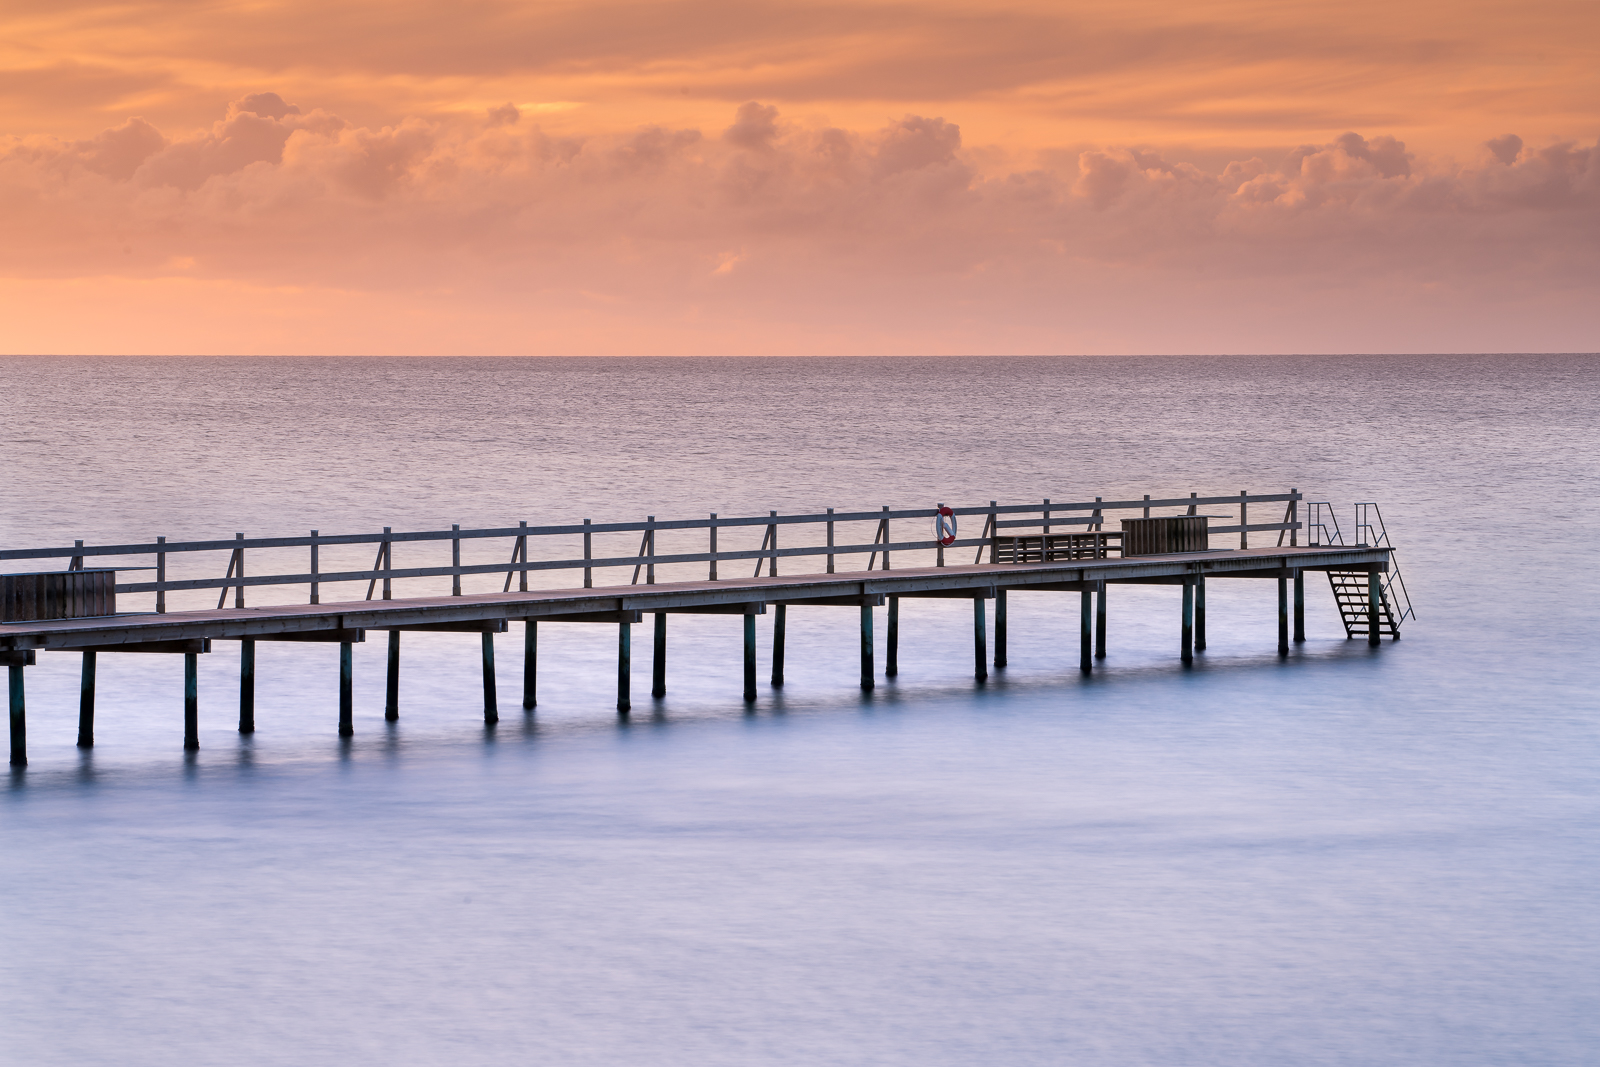 The main pier in Falsterbo